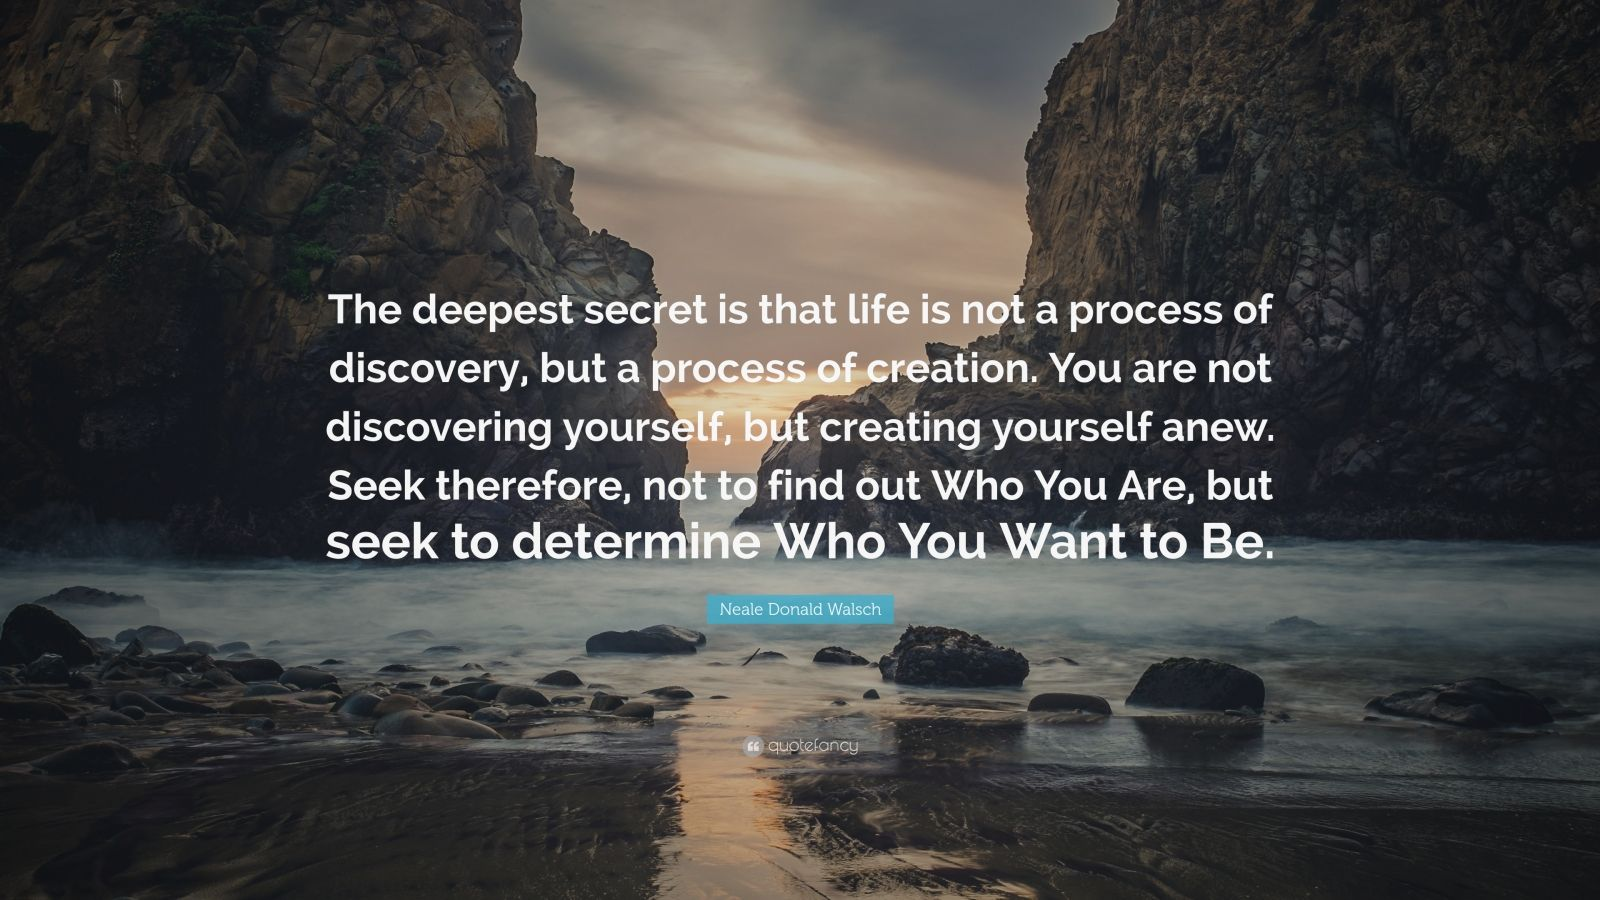 "Neale Donald Walsch Quote: ""The deepest secret is that life is not a process of discovery, but a process of creation. You are not discovering yourself, but creating yourself anew. Seek therefore, not to find out Who You Are, but seek to determine Who You Want to Be."""